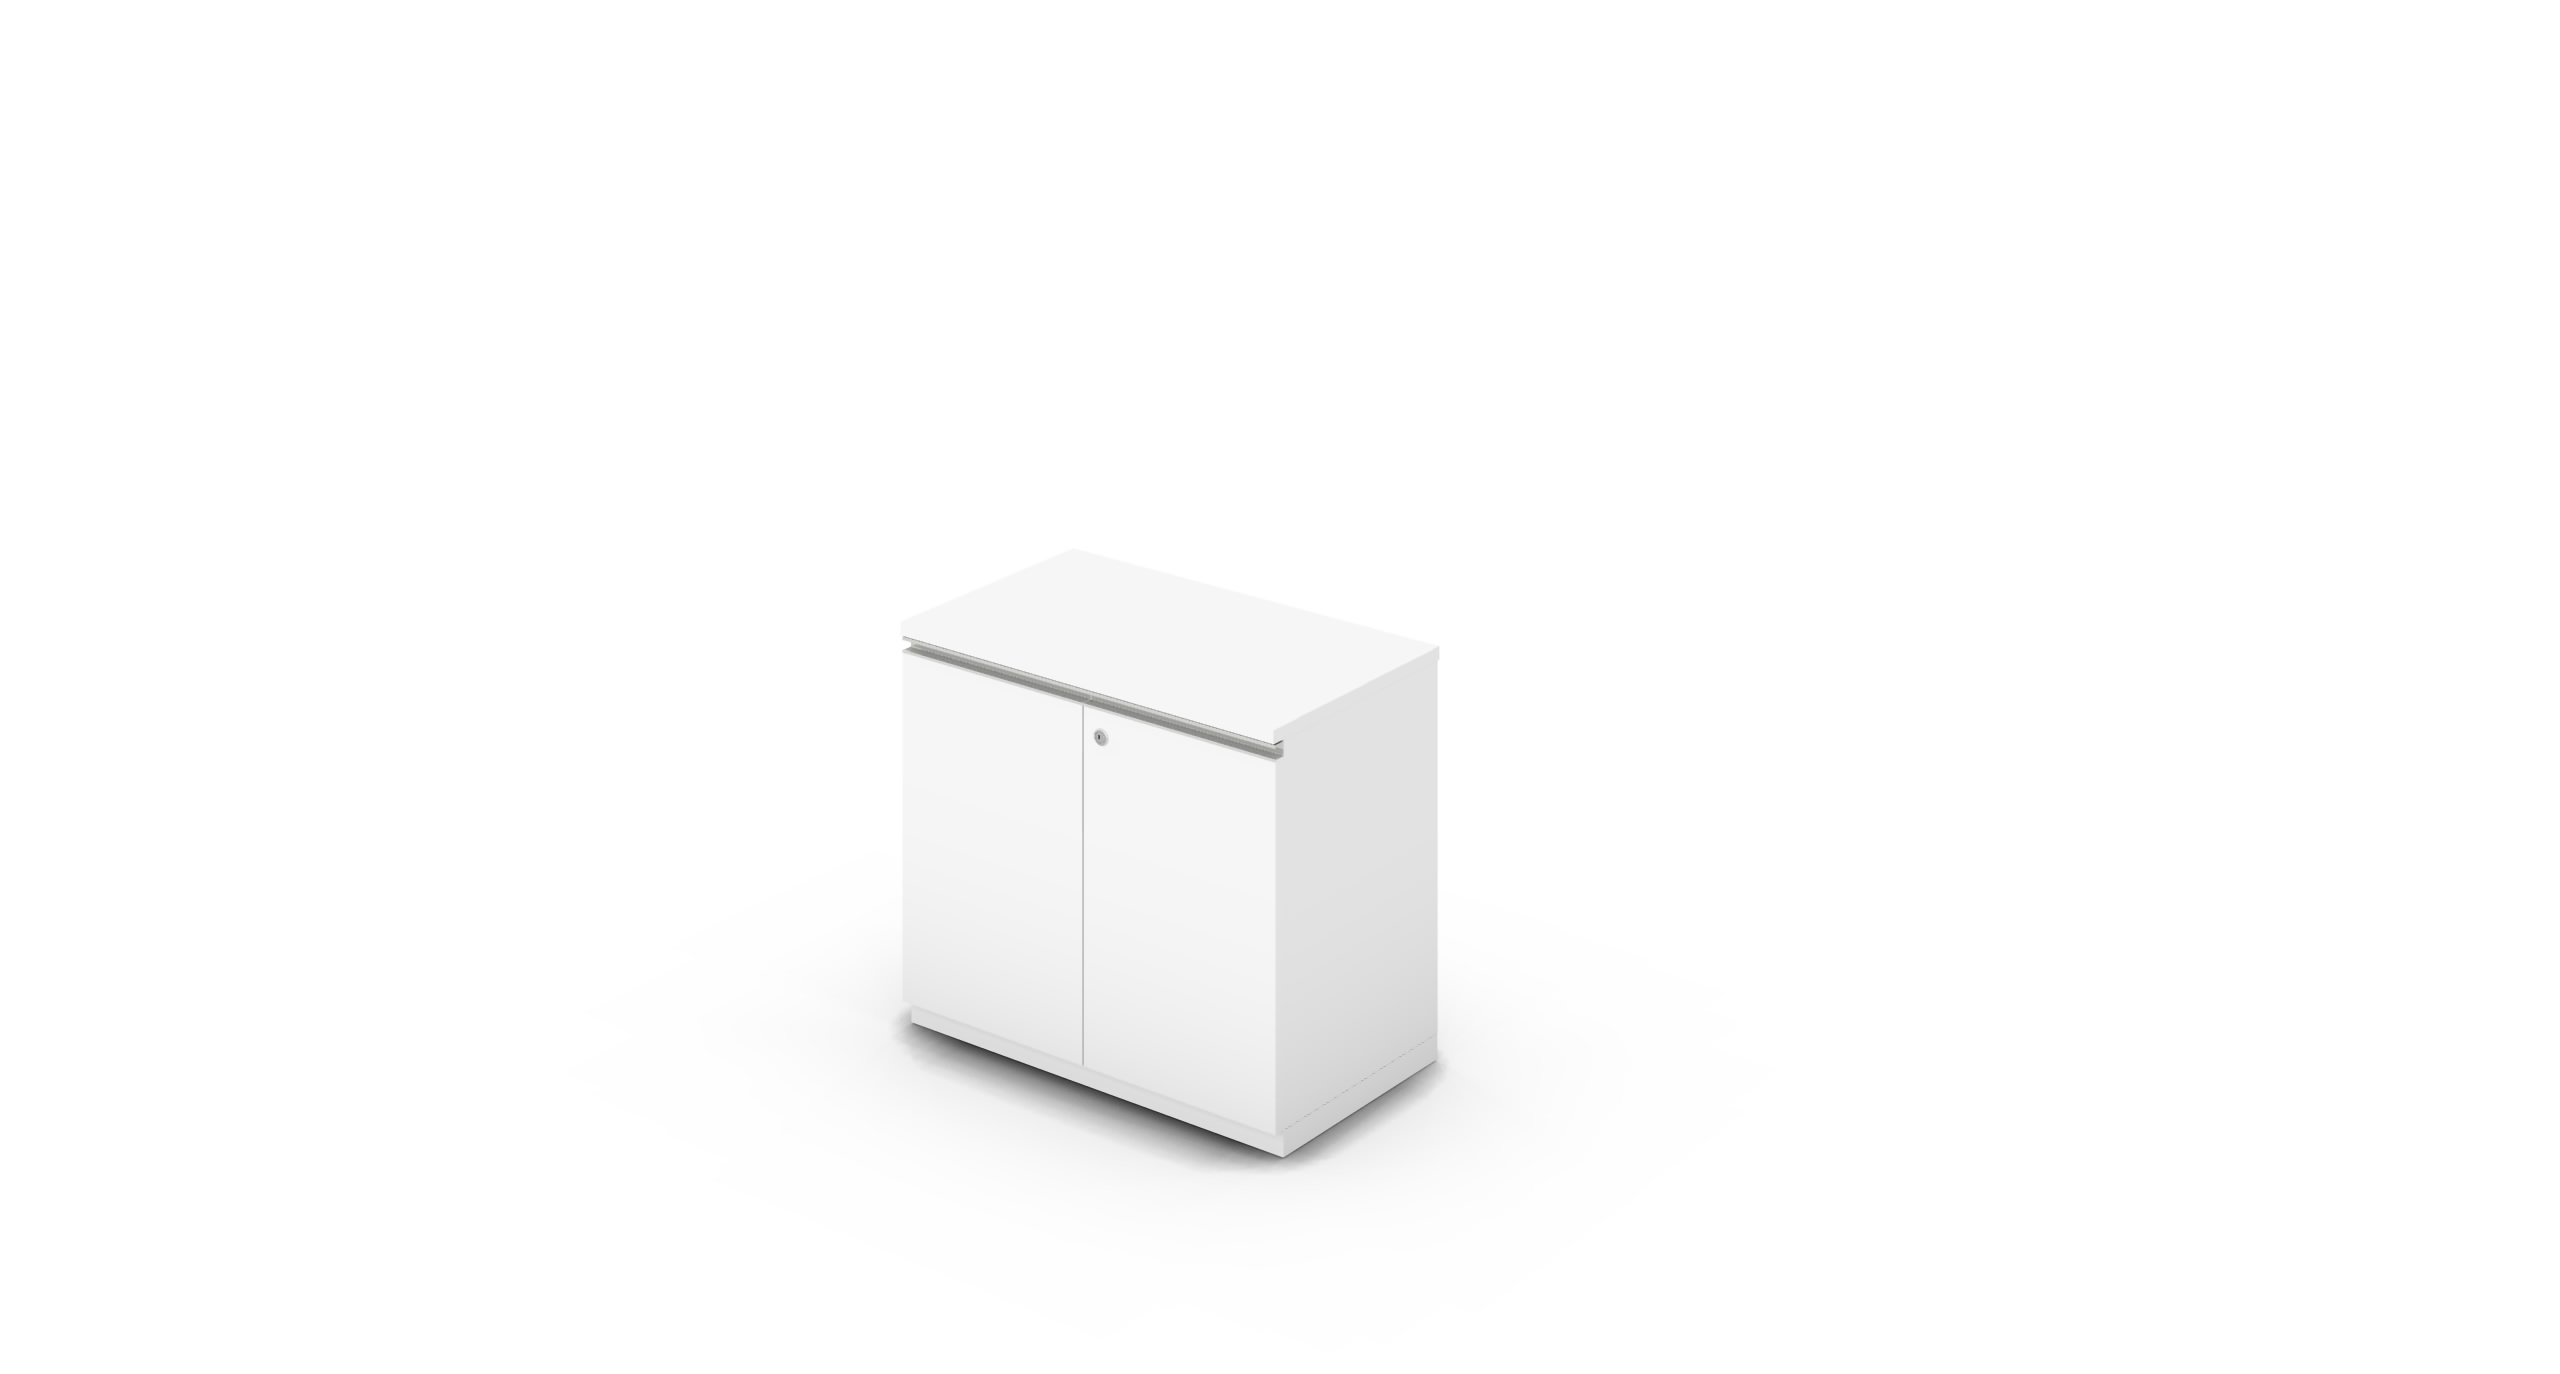 Cabinet_800x450x775_HD_White_Rail_WithCylinder